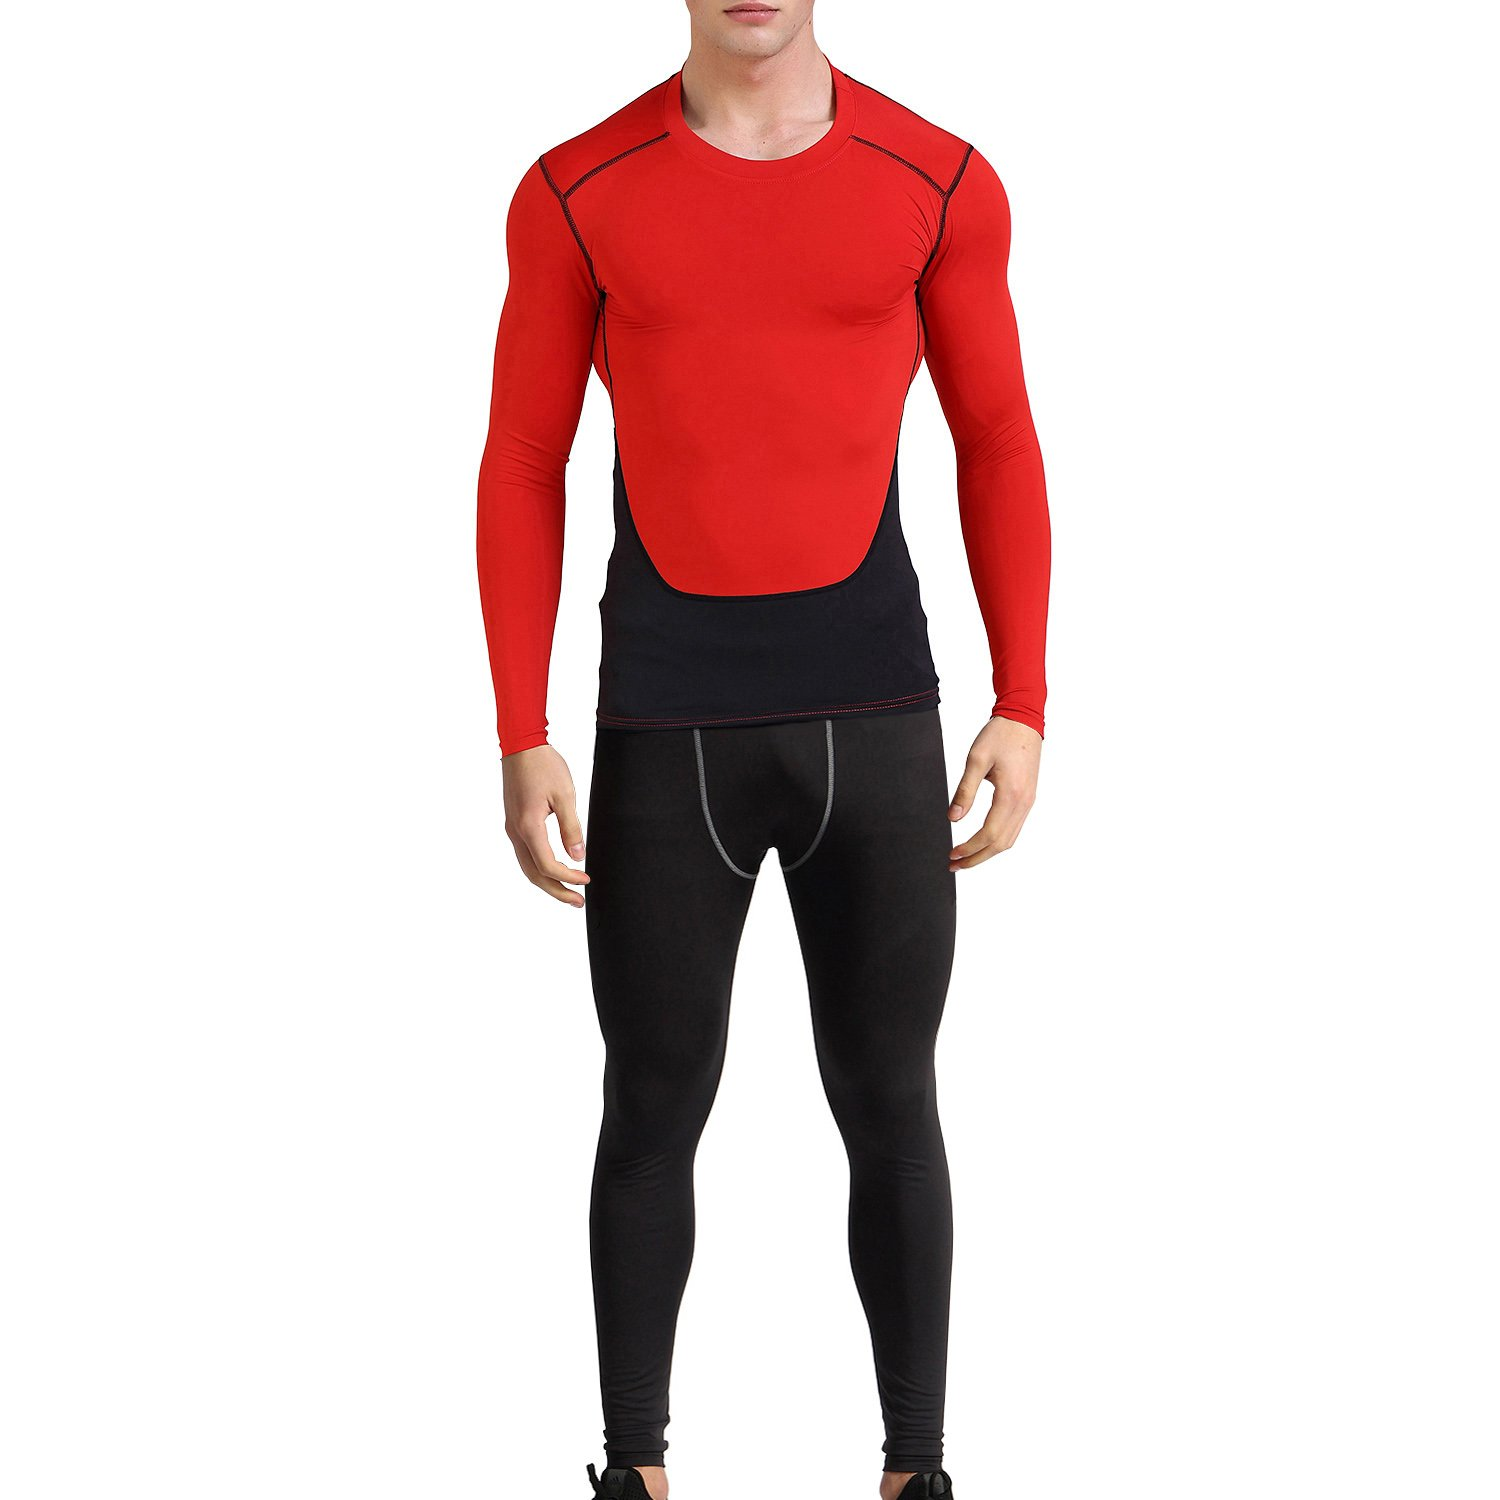 1Bests Men's Gym Workout Running Quick-Drying Compression Shirt and Pants Sets